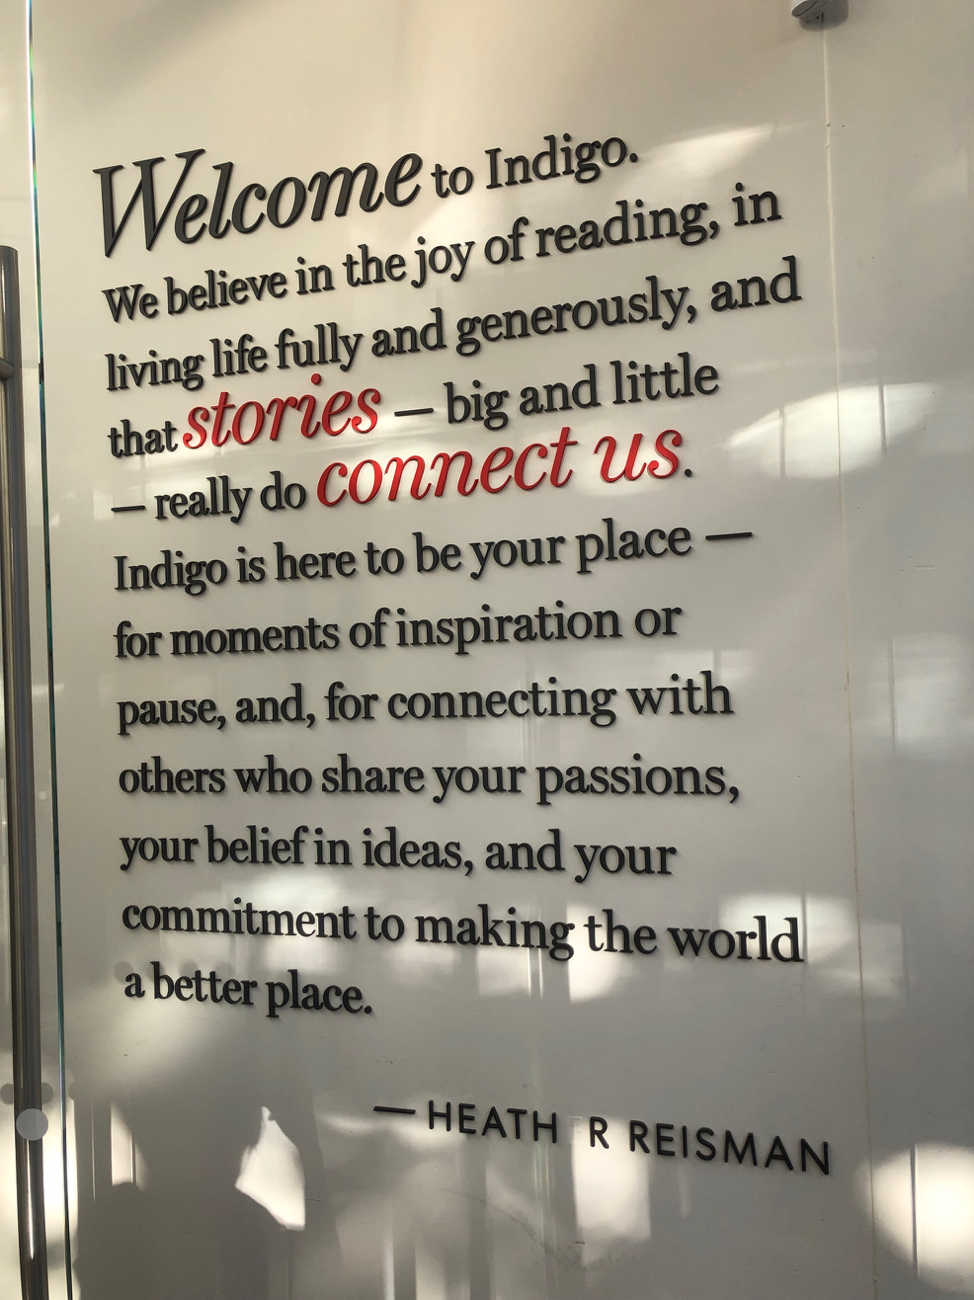 Pic of written welcome statement to !ndigo bookshop in Vancouver.